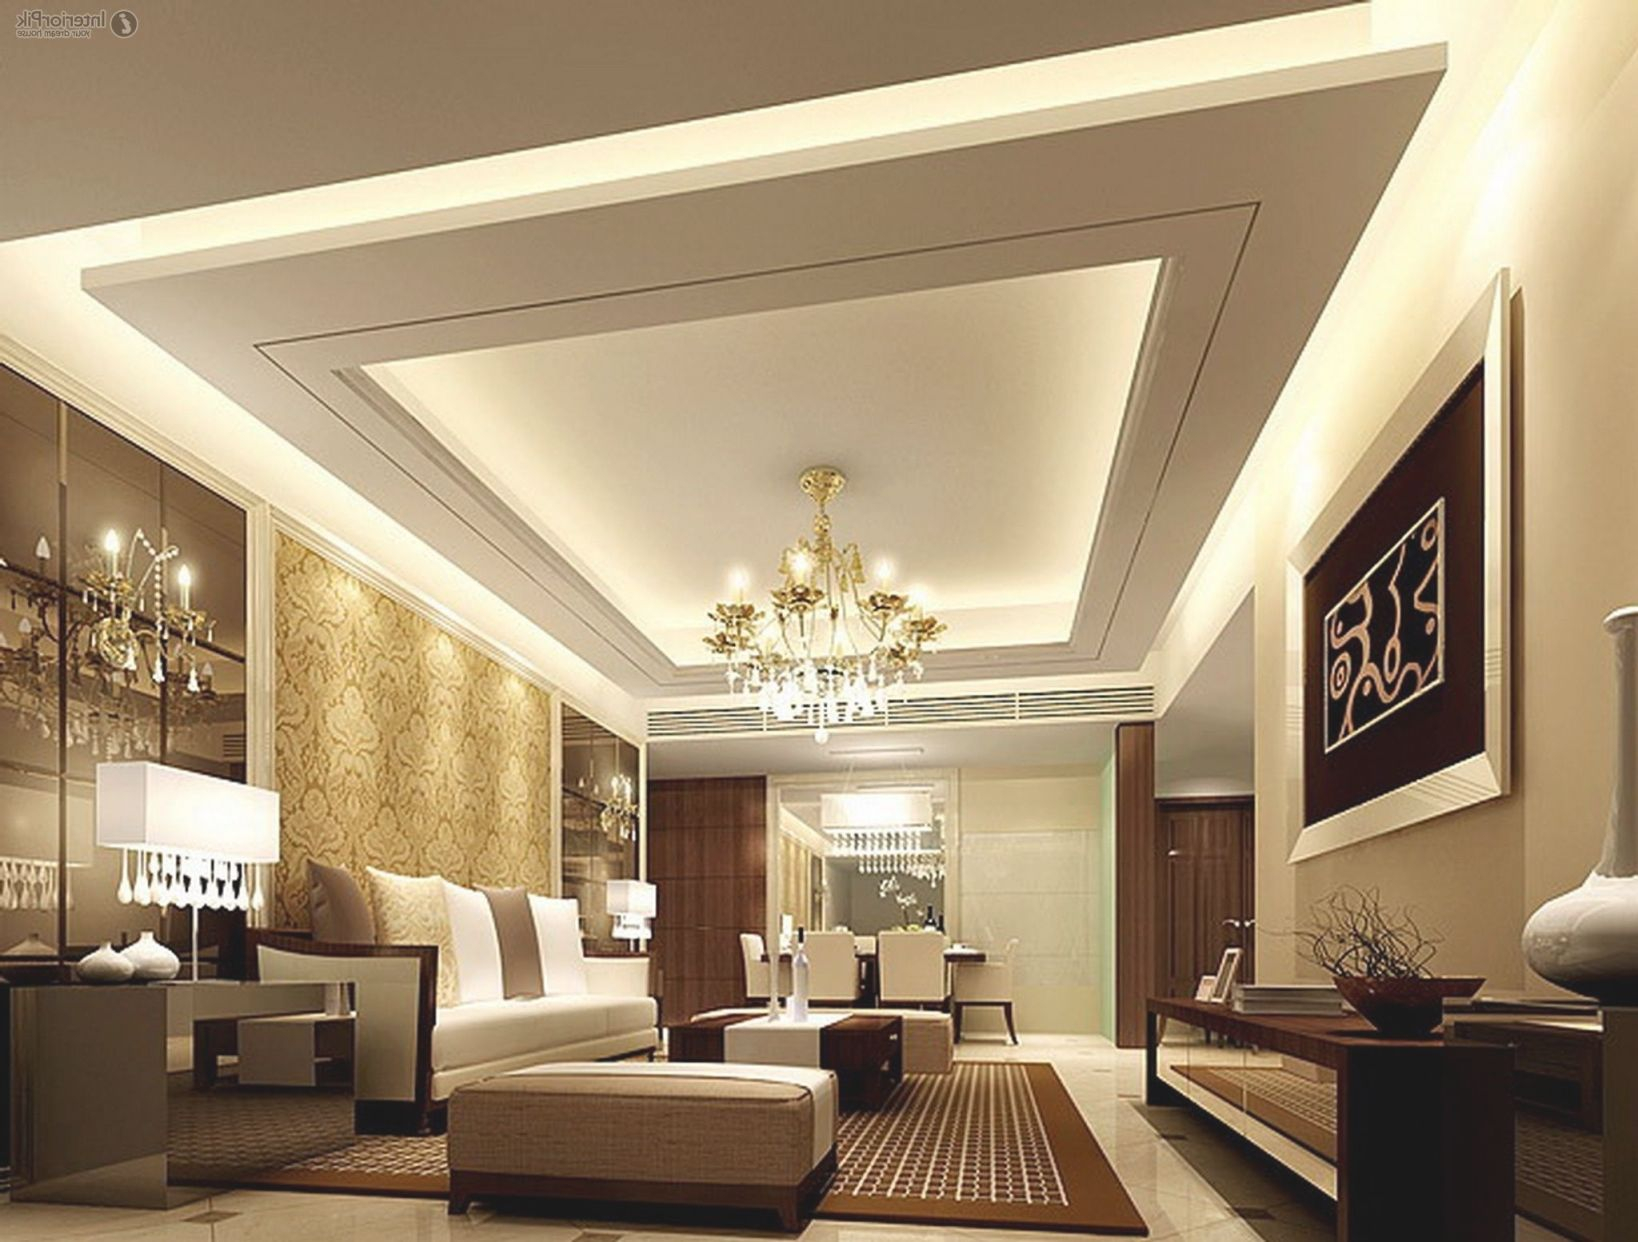 Gypsum Ceiling Design Living Room Lighting Home Decorate regarding 15 Gallery Inspiration For Living Room Decorating Ideas 2014